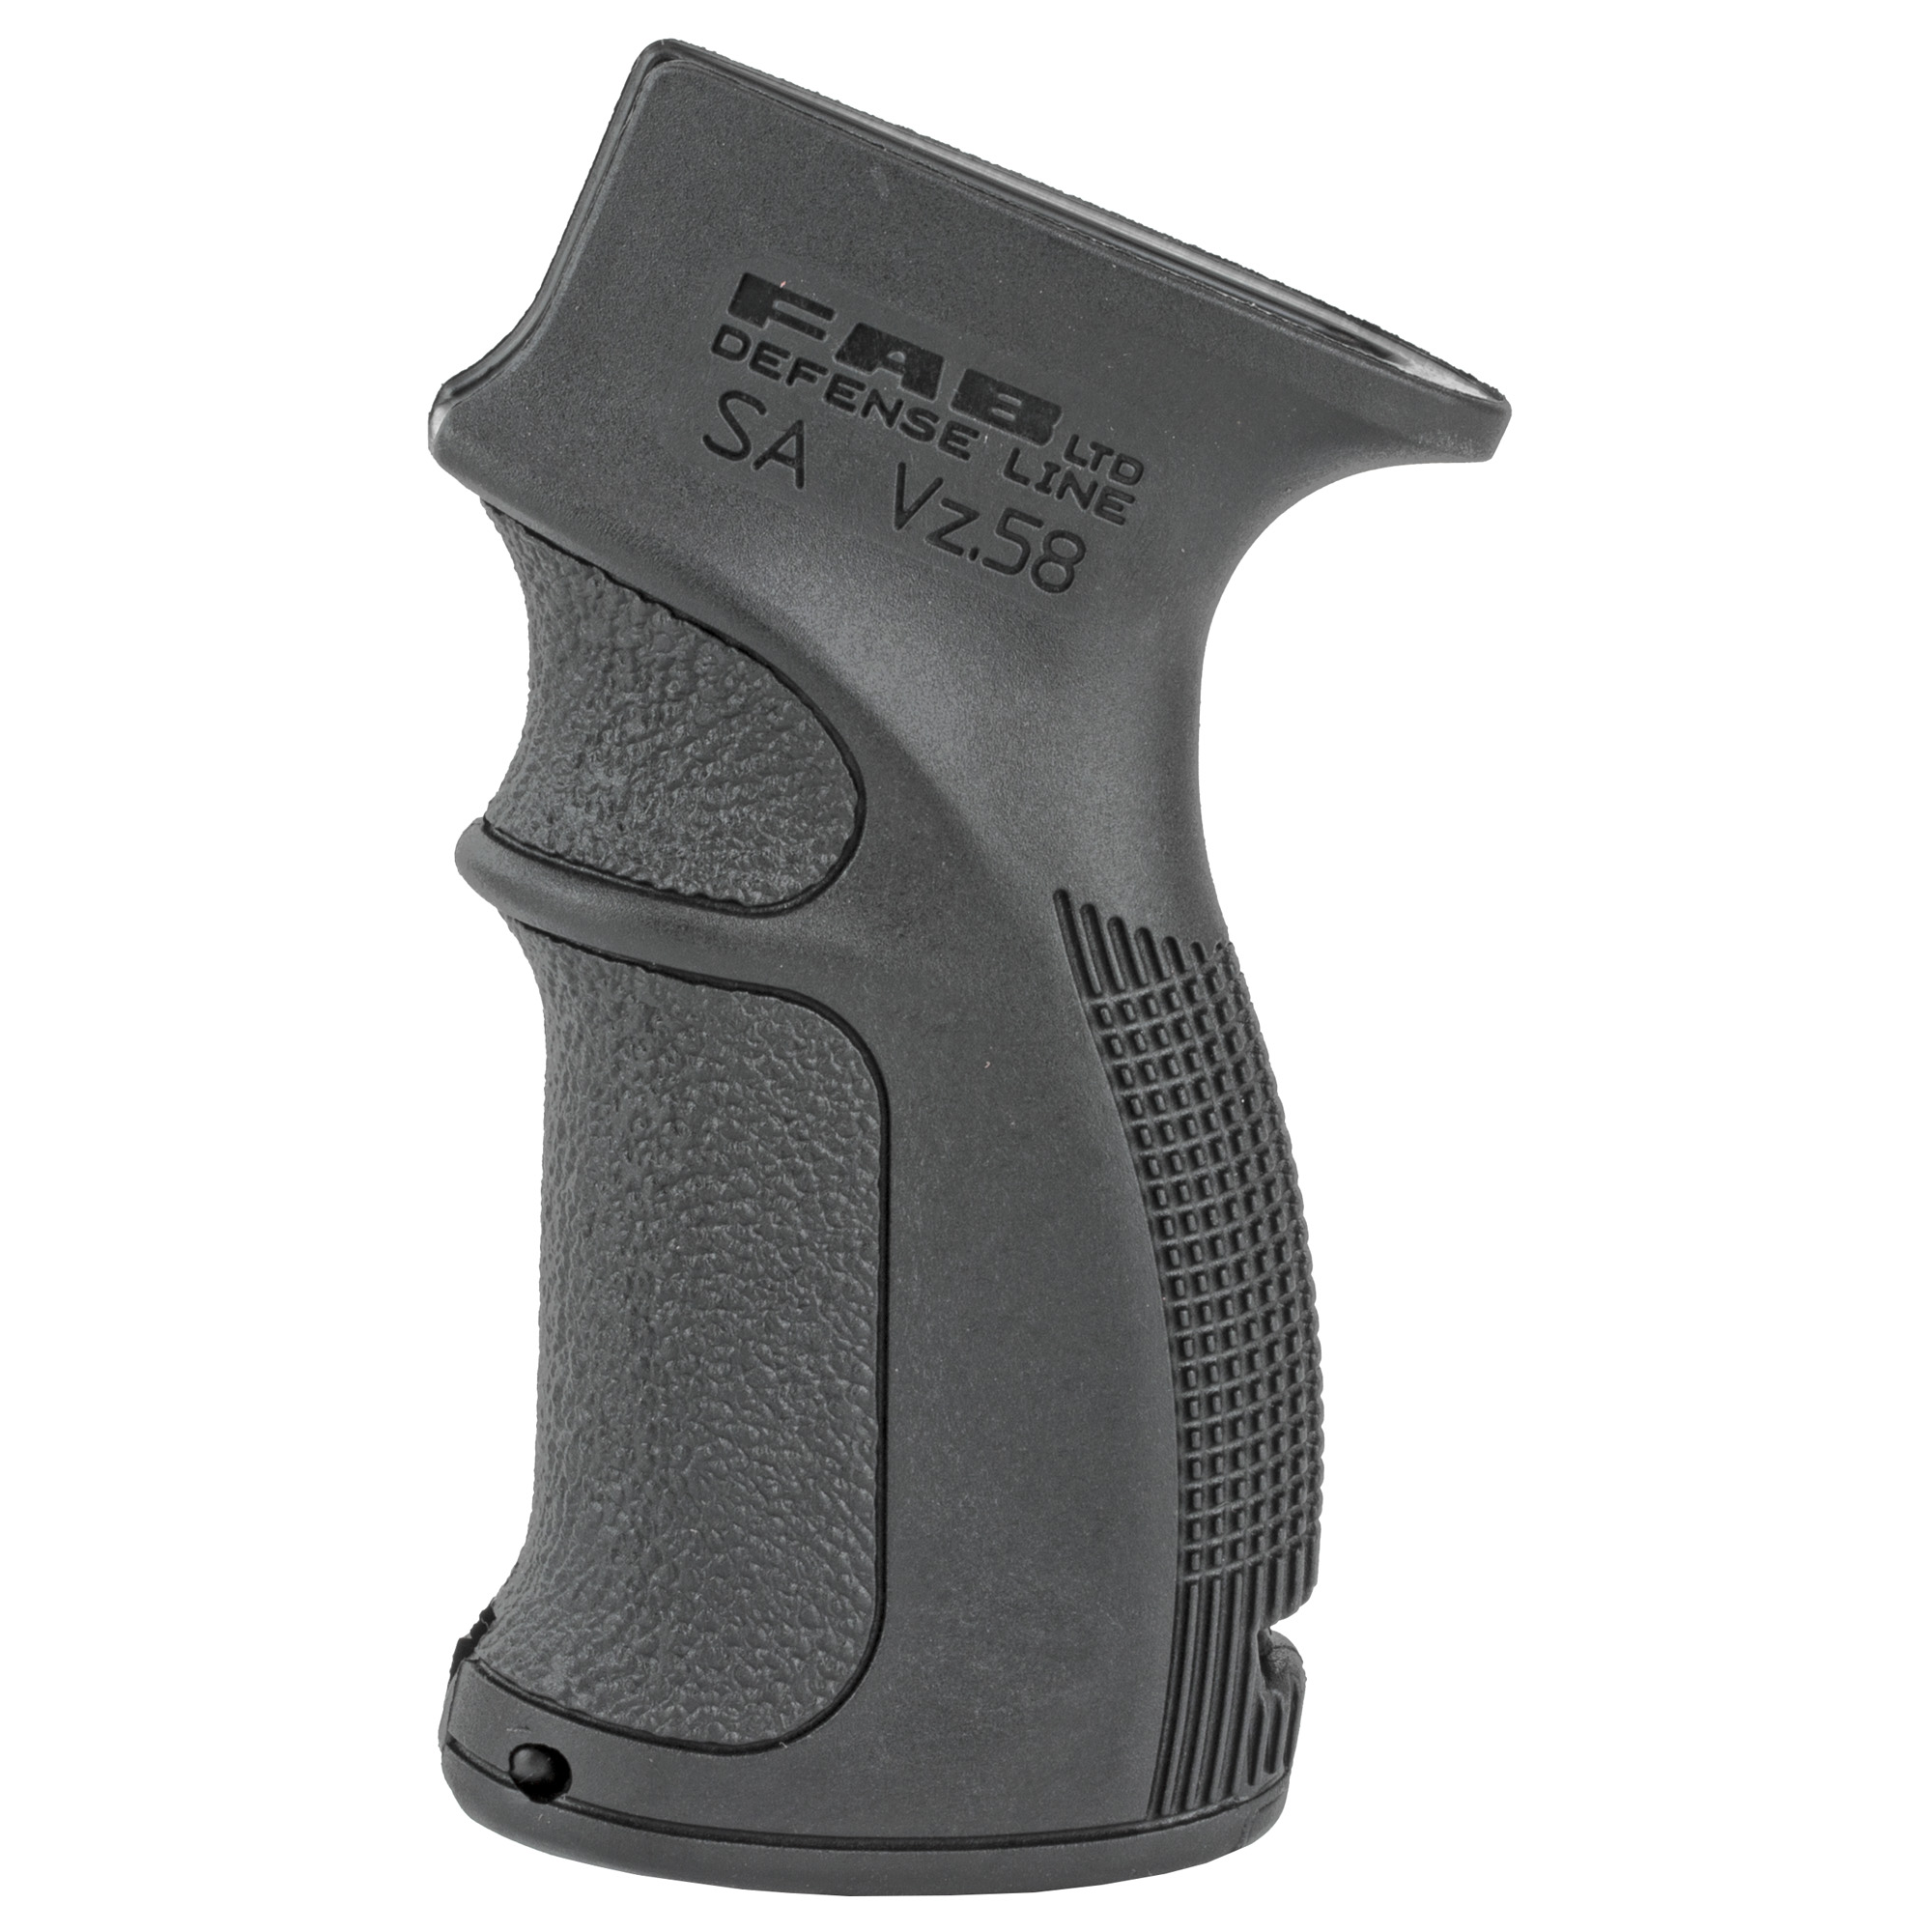 "Their AG-58 Ergonomic Pistol Grip provides enhanced grip and improved weapon handling for SA VZ 58. Features a built in storage compartment"" finger grooves and backstrap and is made of MIL-SPEC fiberglass reinforced polymer composite."